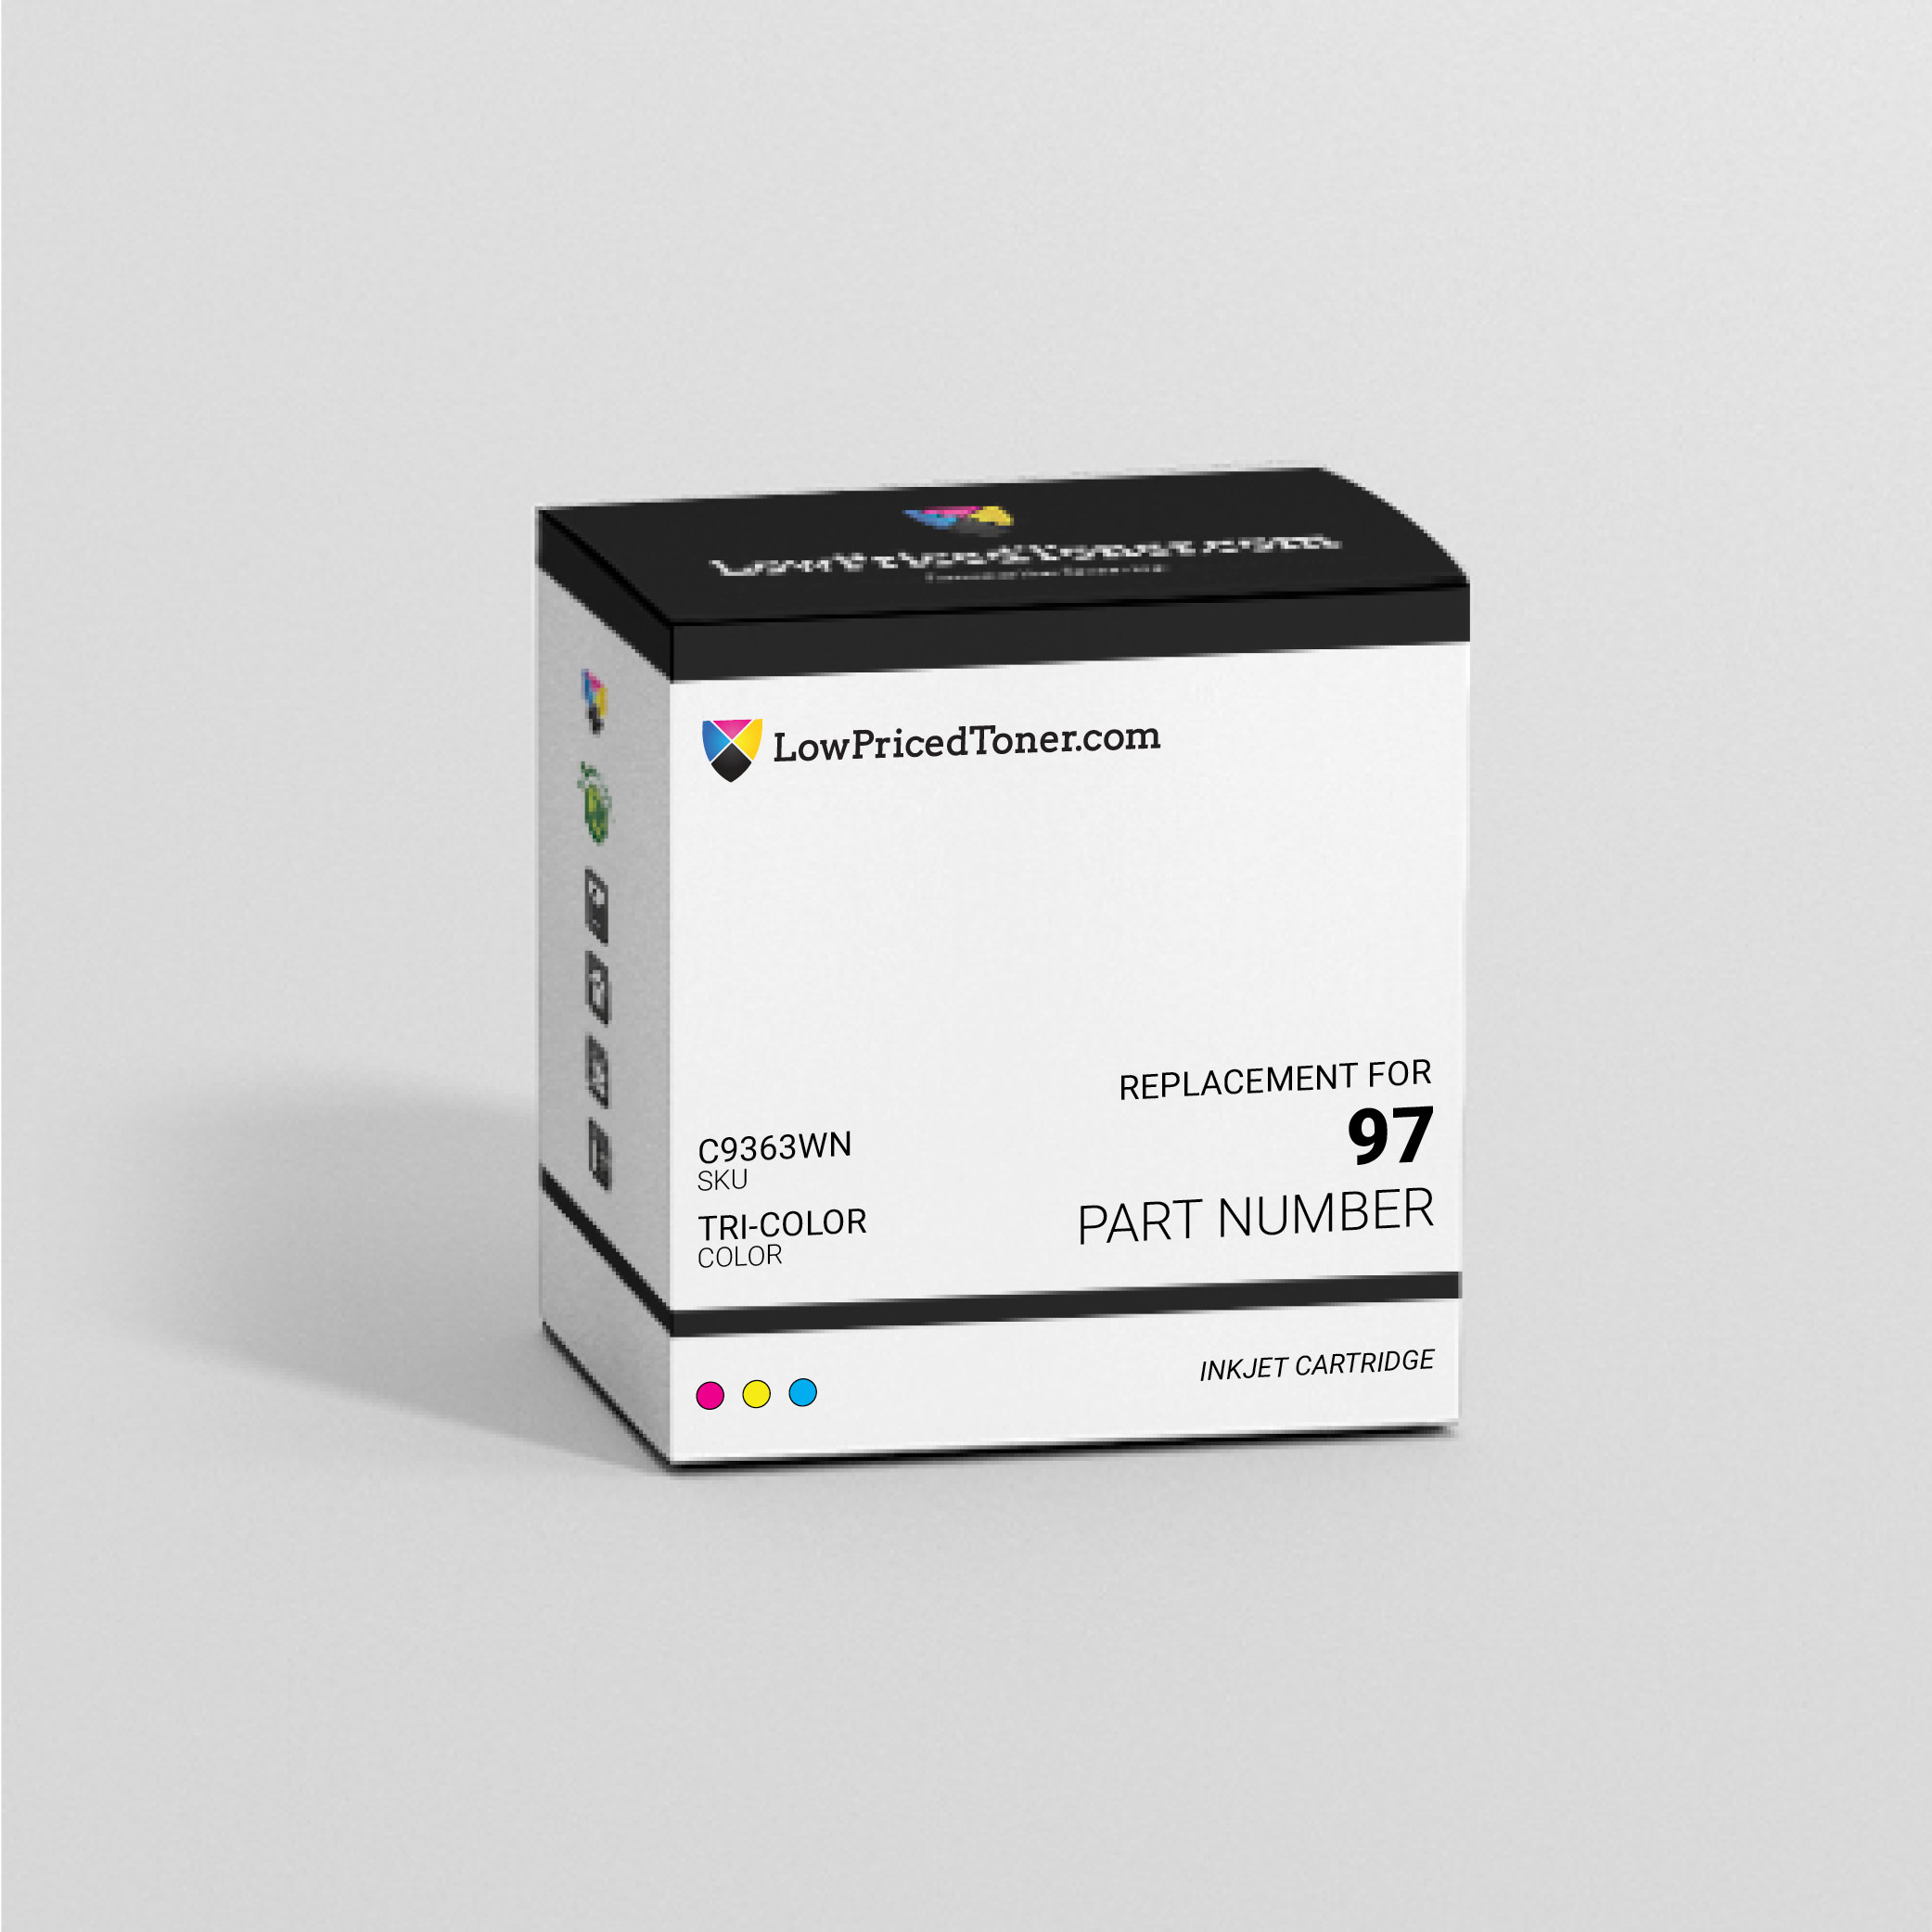 HP C9363WN 97 Remanufactured TriColor Ink Cartridge